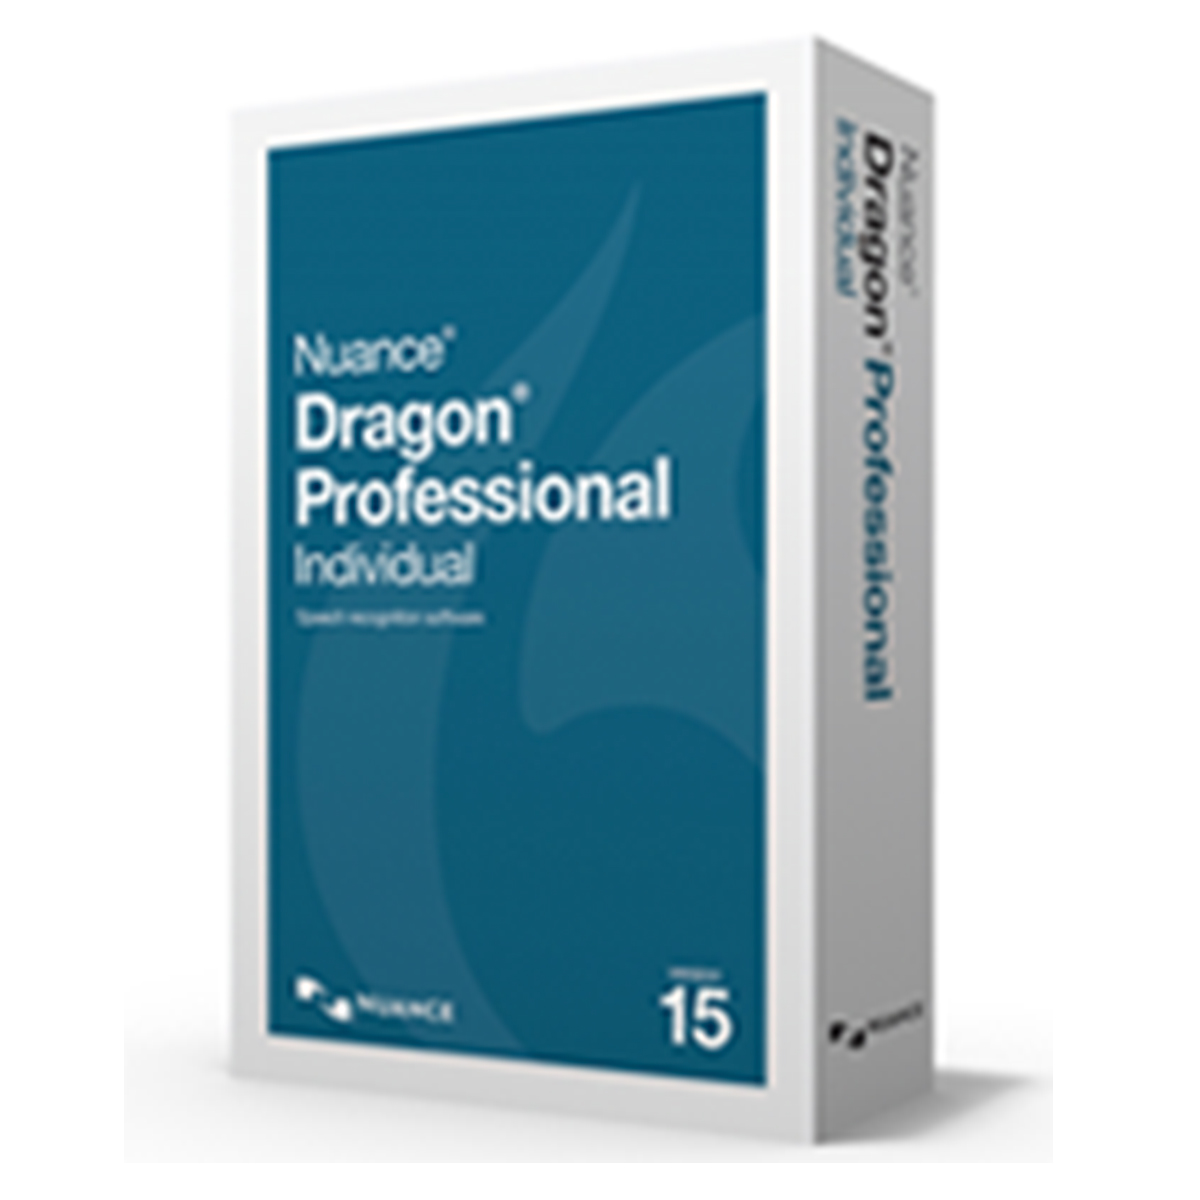 Nuance Dragon Professional Individual 15 - Upgrade from Premium 12 and up Box Copy